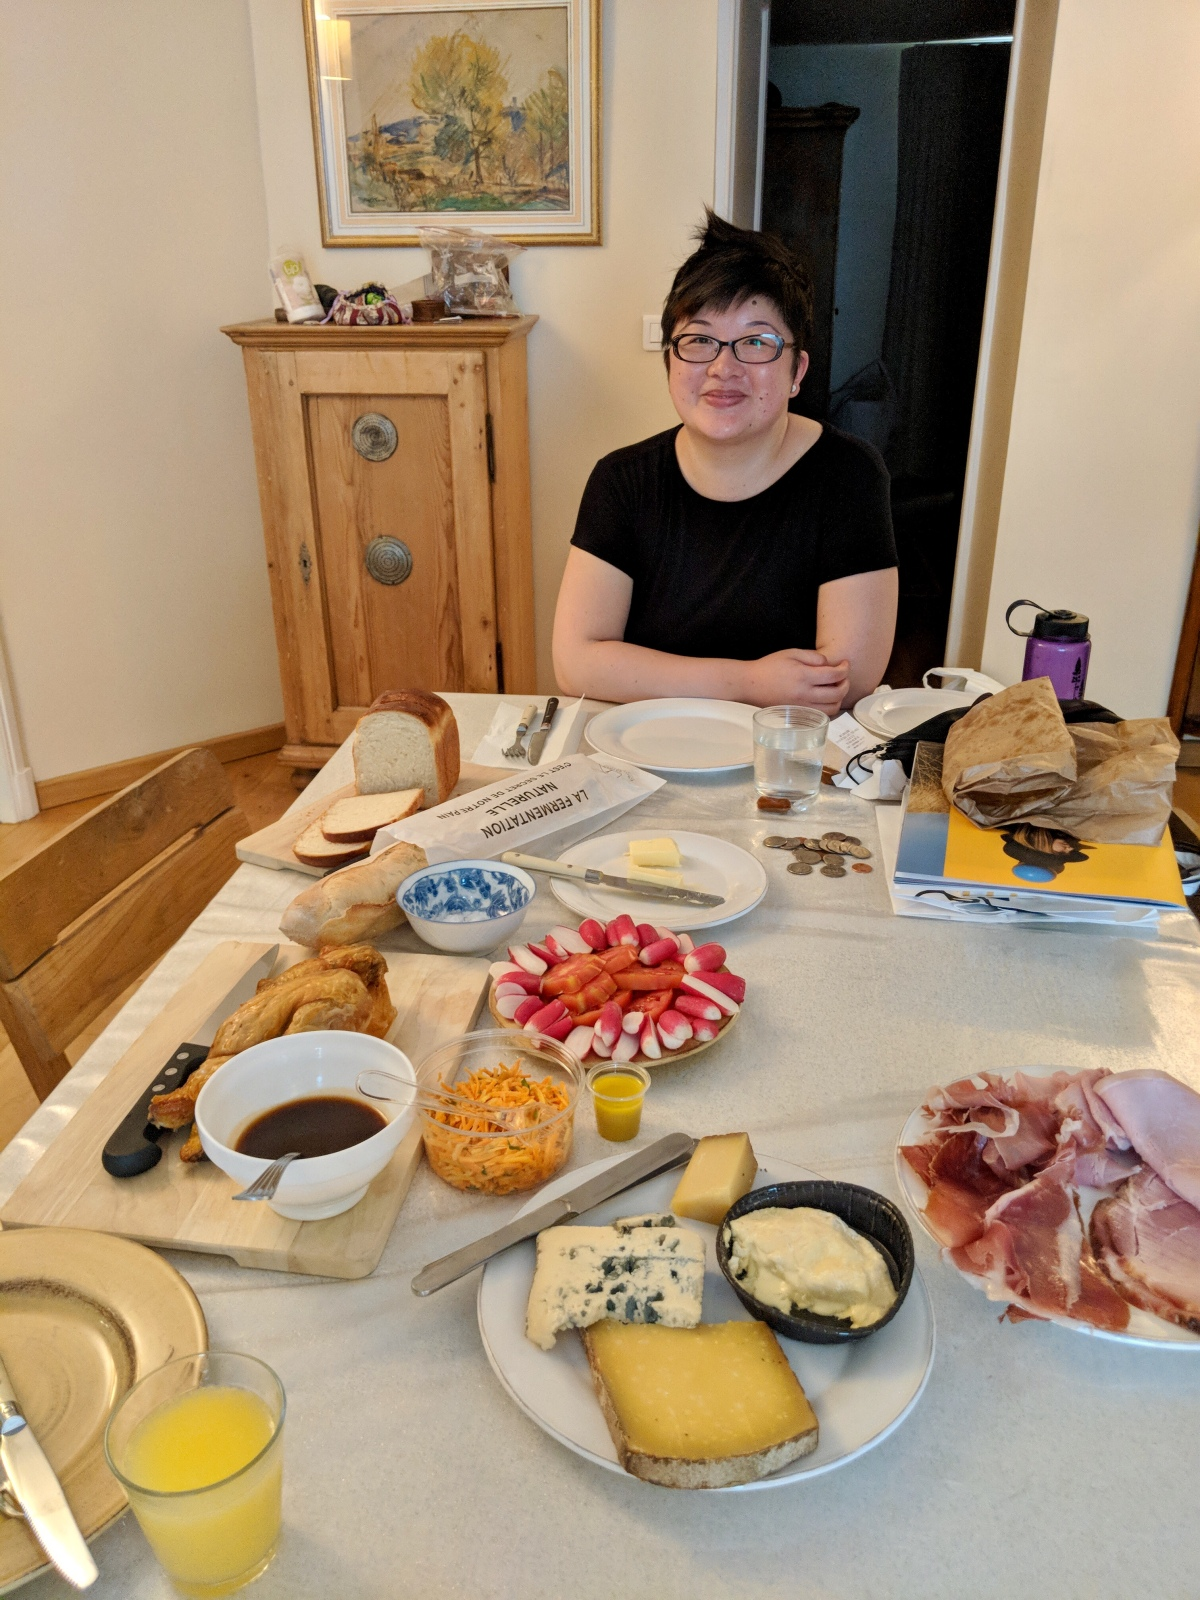 Lisa surrounded by cheese, ham, and other dinner items